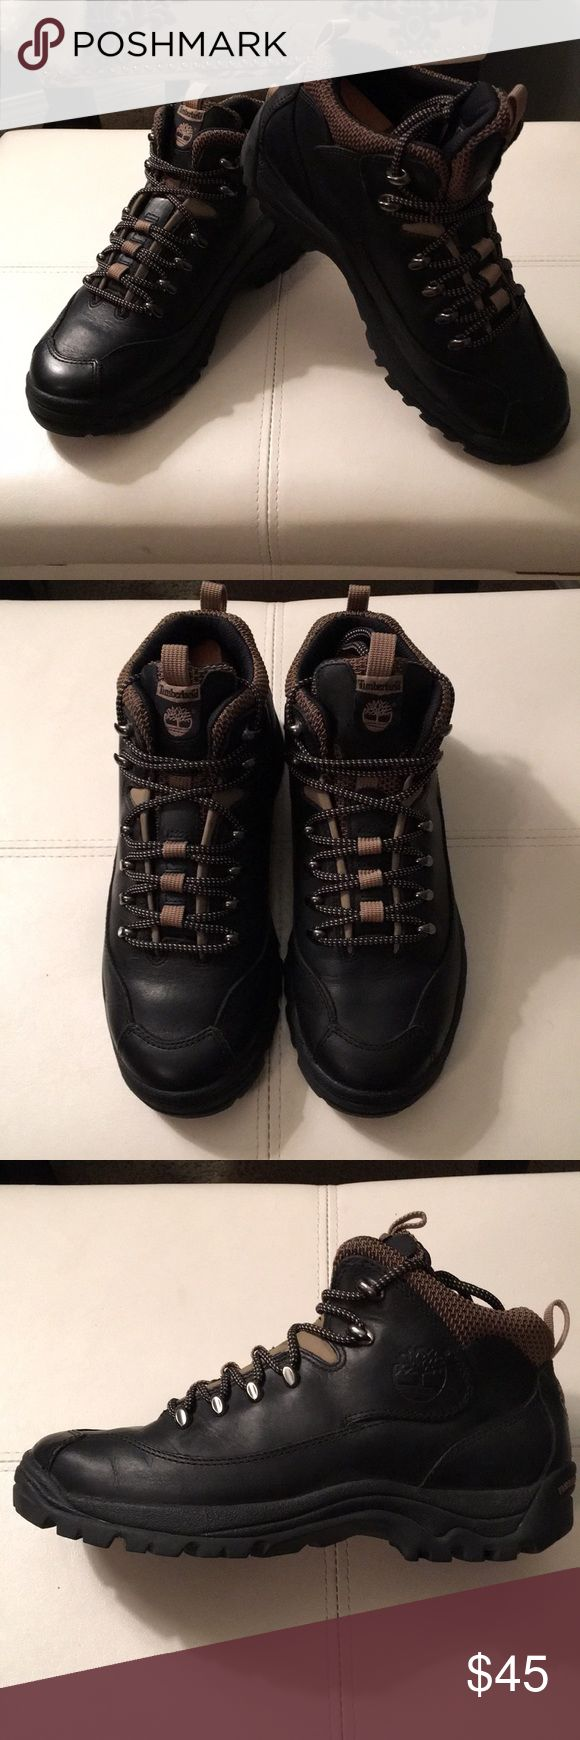 Timberland Chukka Mid Hiker While I can't say with 100% certainty that this has never been worn I can say it looks almost new / mint condition.  Great hiker with speed lace. Timberland Shoes Chukka Boots